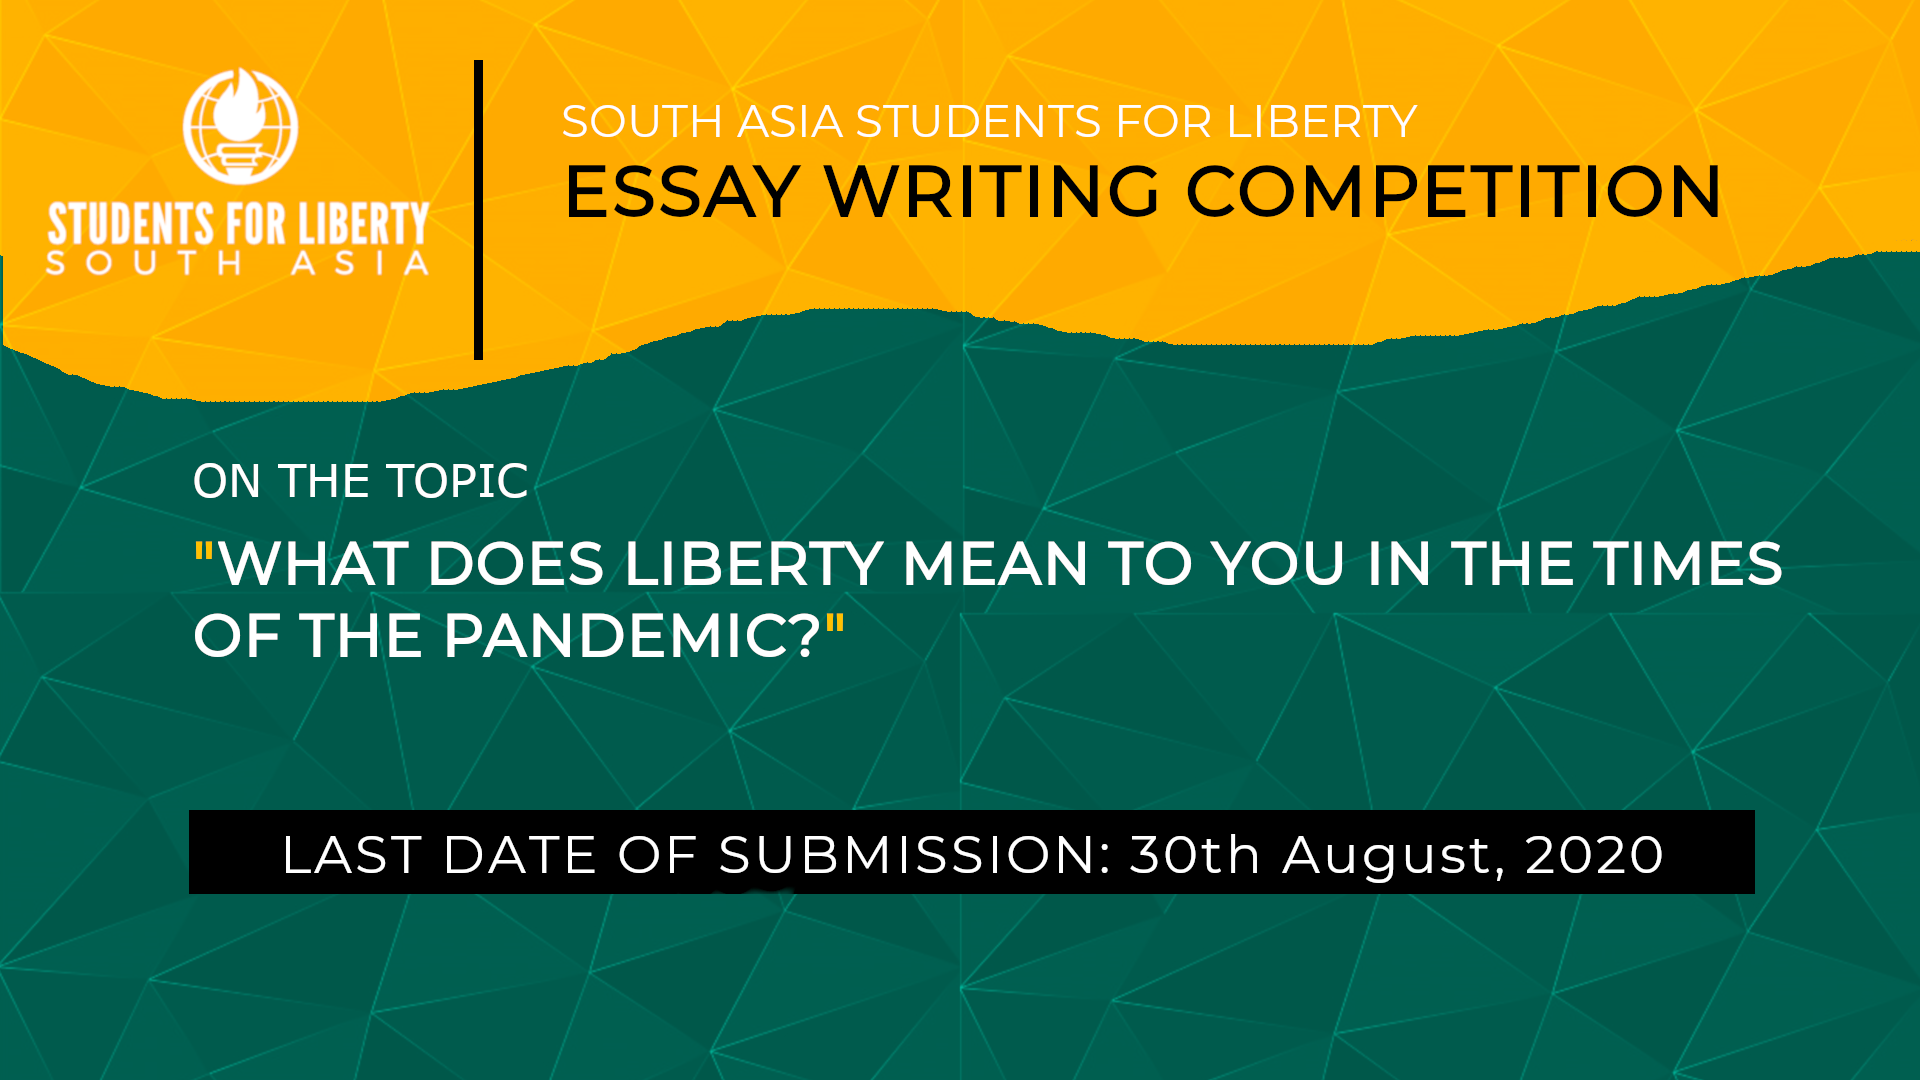 South Asia Students For Liberty's Short Essay Writing Competition